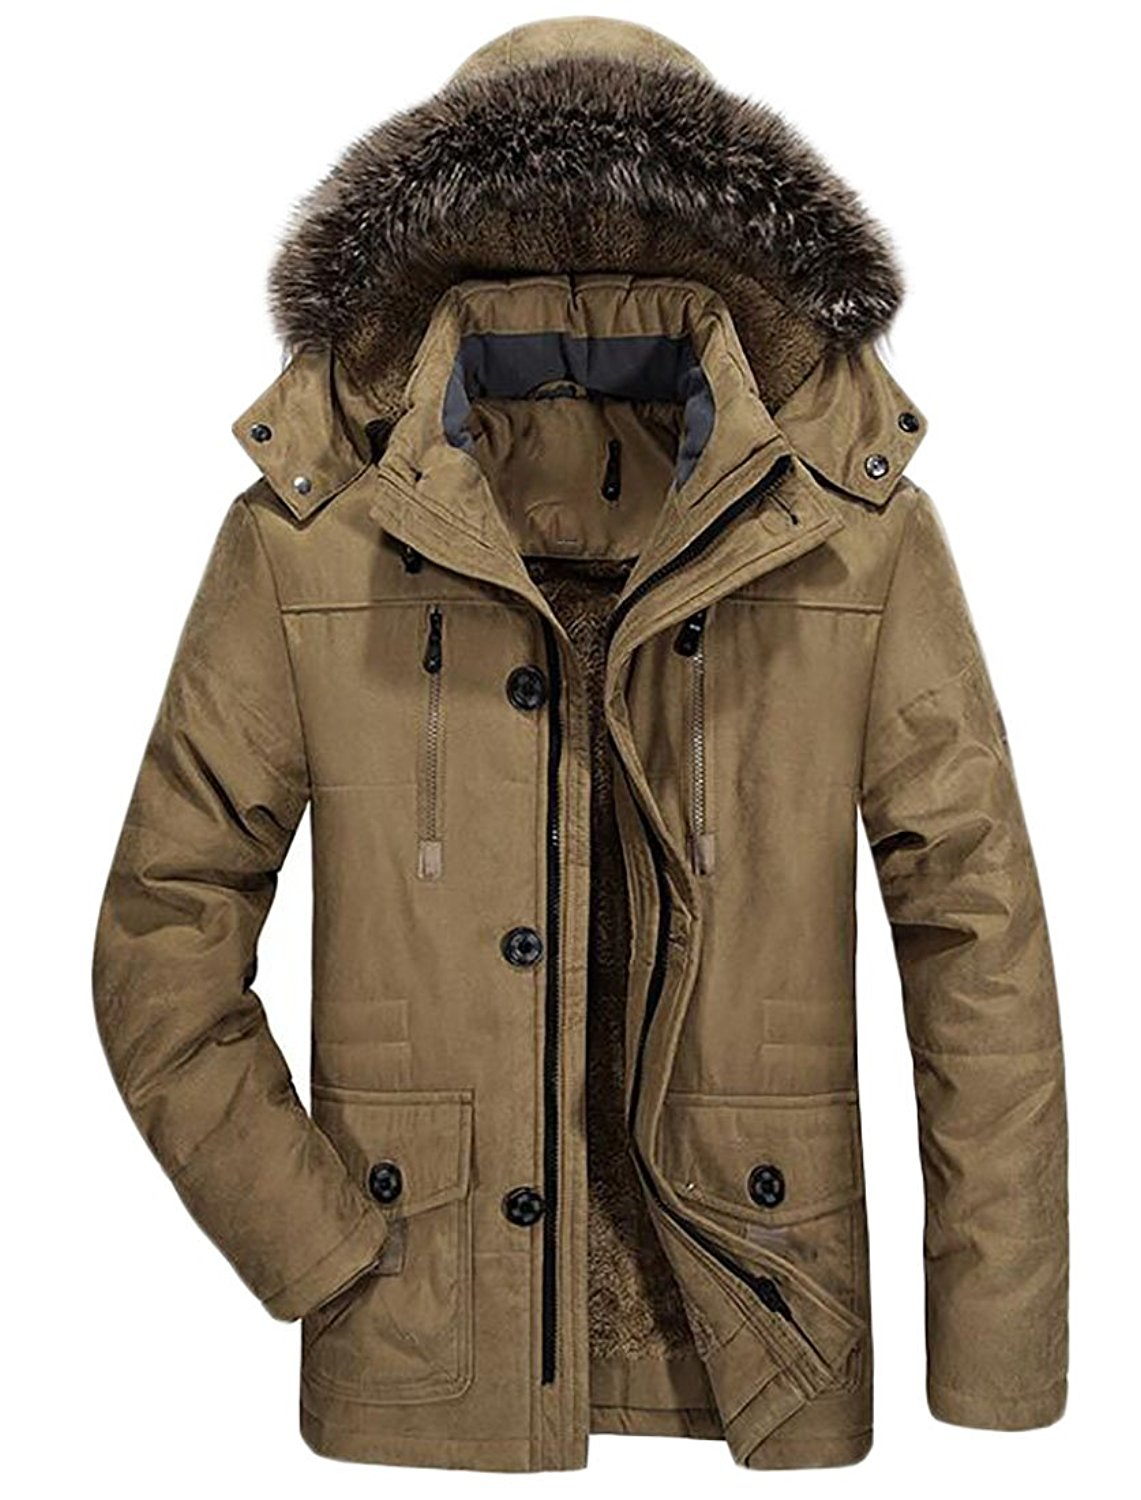 ONTBYB Mens Casual Faux Fur Parka Jackets Fleece Lined Hood Toggle Thicken Coat